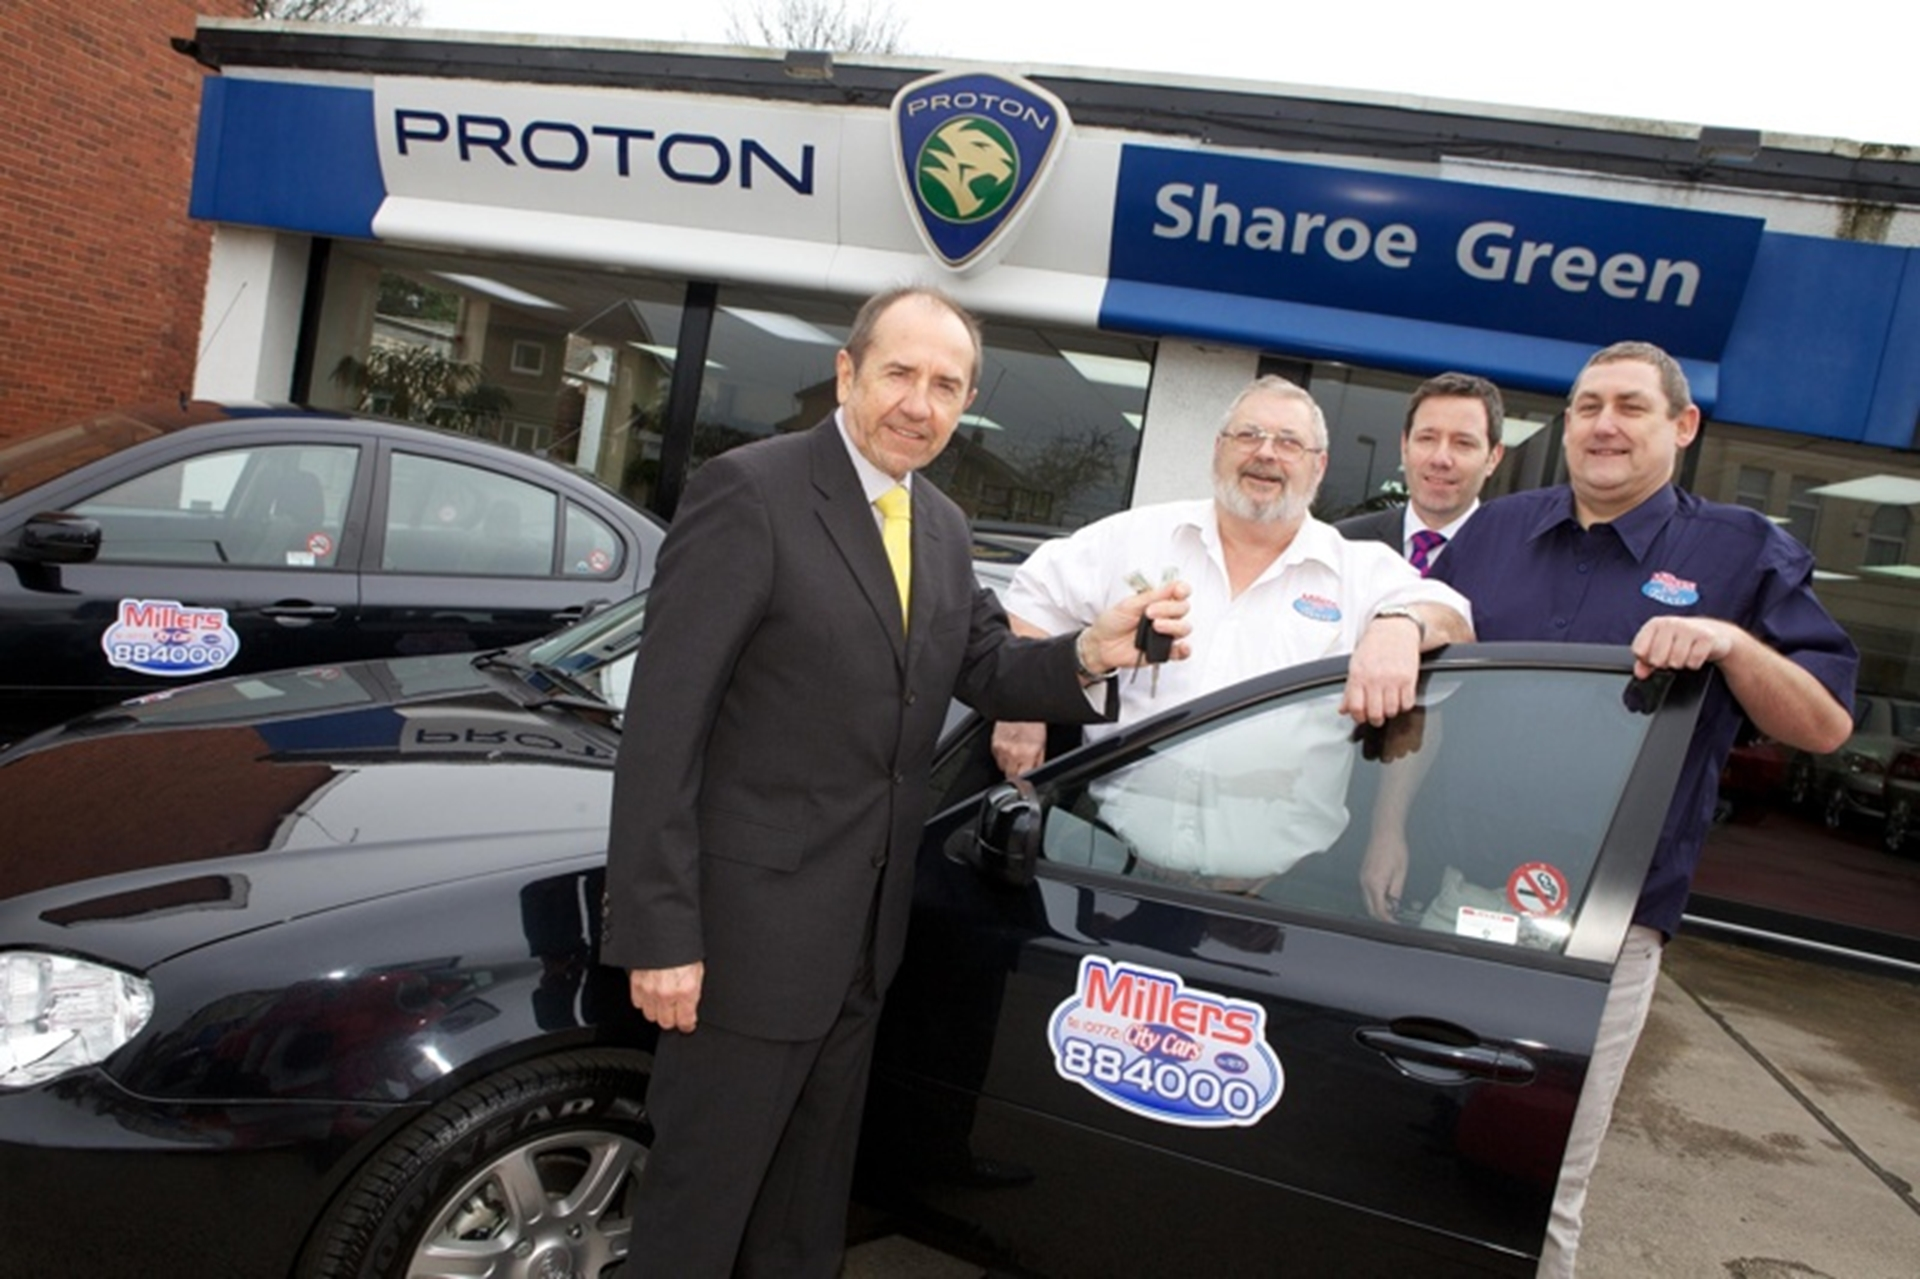 Local Cab Company Goes Carbon Conscious with New Fleet of LPG